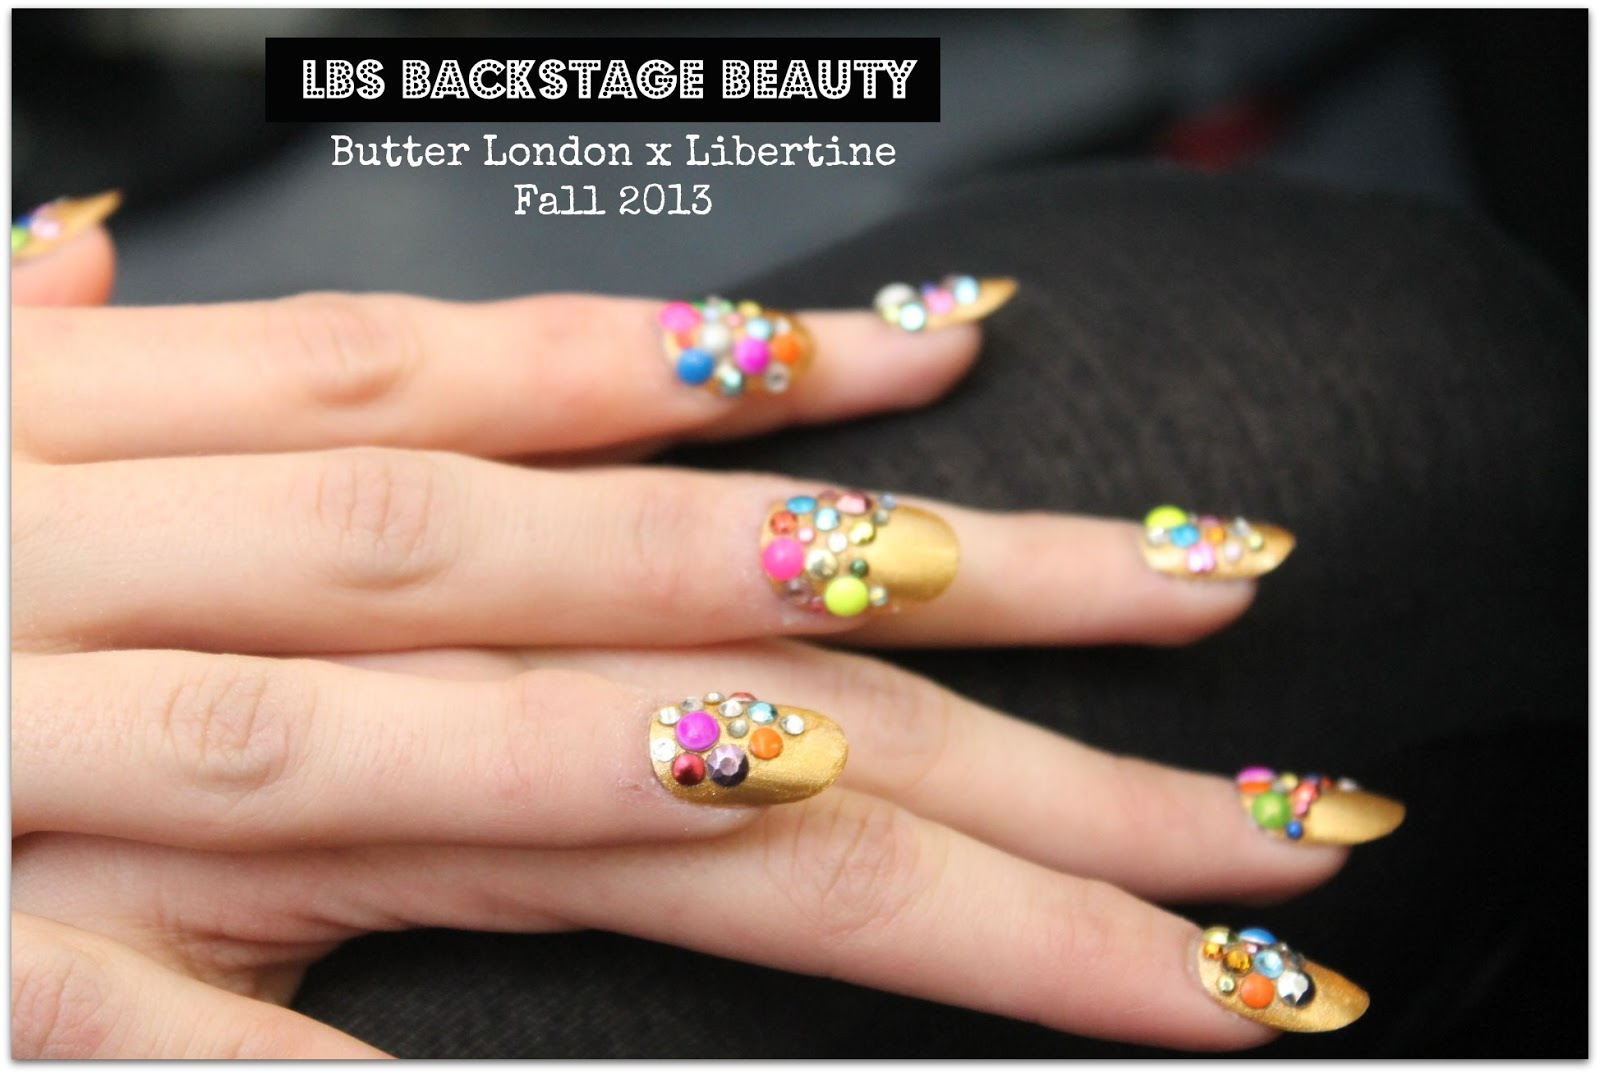 LBS Backstage Beauty: Butter London for Libertine Fall 2013 ...